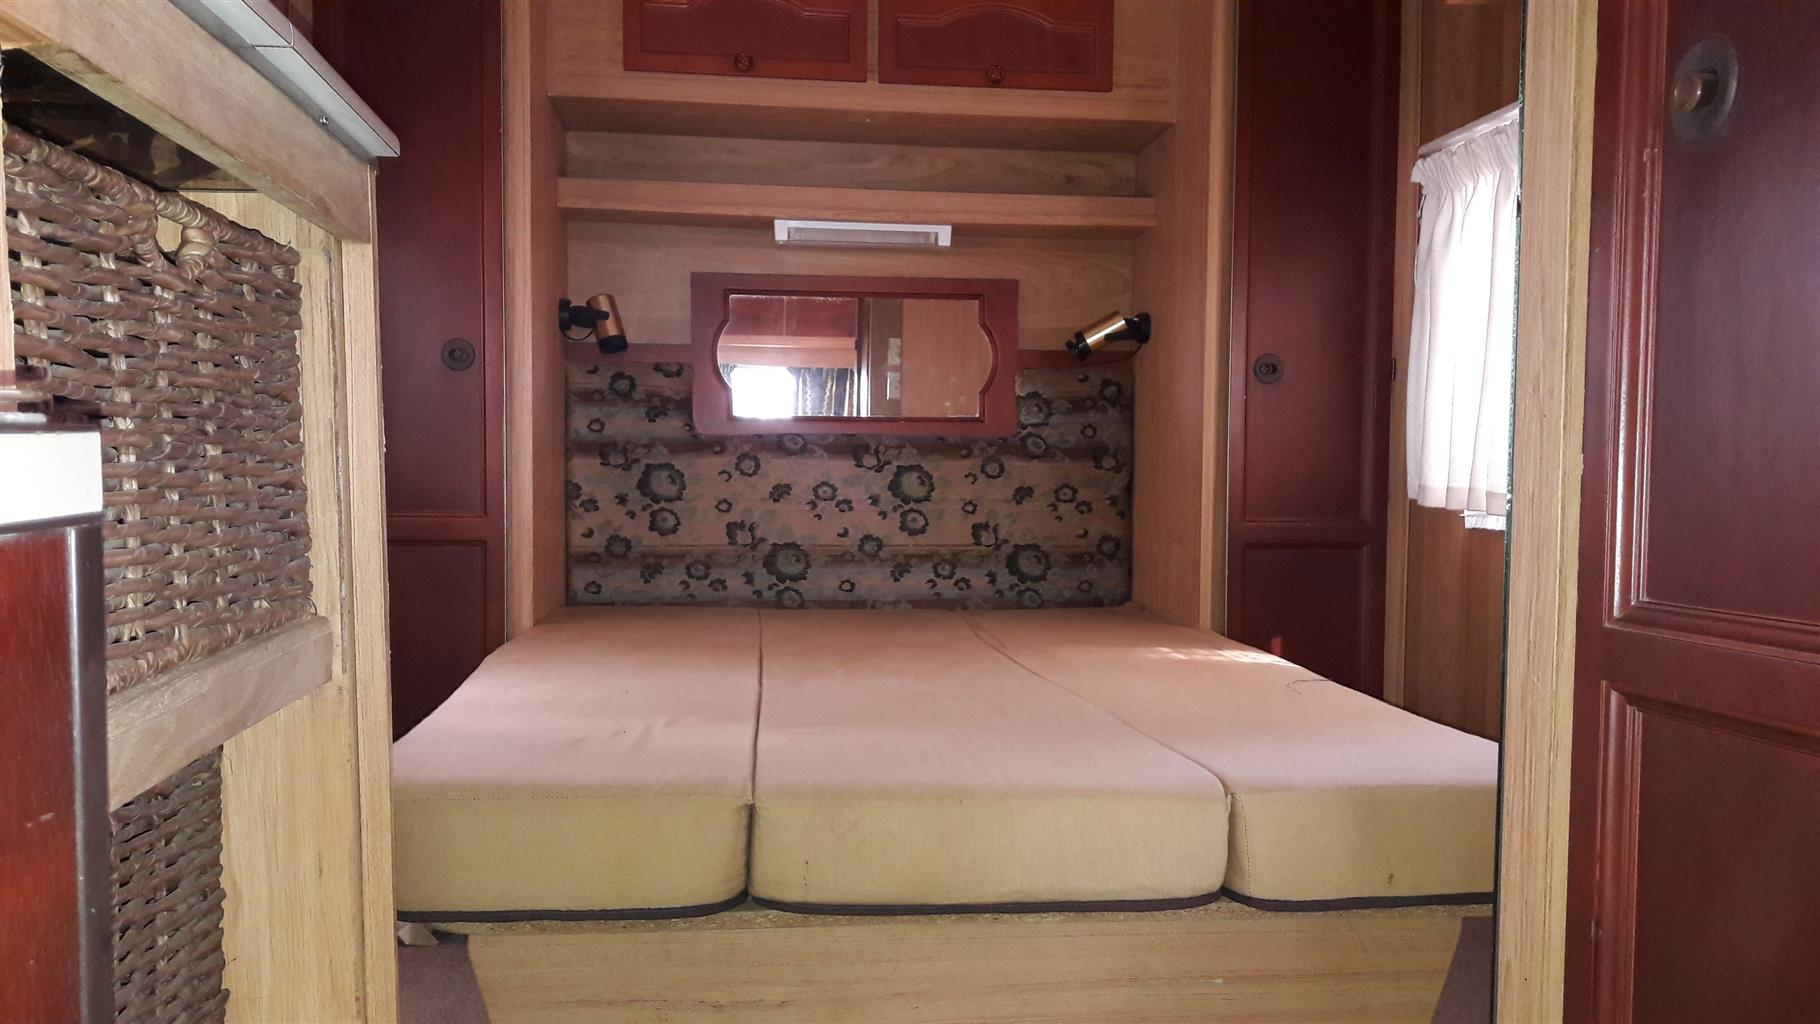 GYPSEY 4 B WITH FULL TENT TOILET CUBICLE AND EILAND BED IN EXCELLENT CONDITION MUST BE SEEN